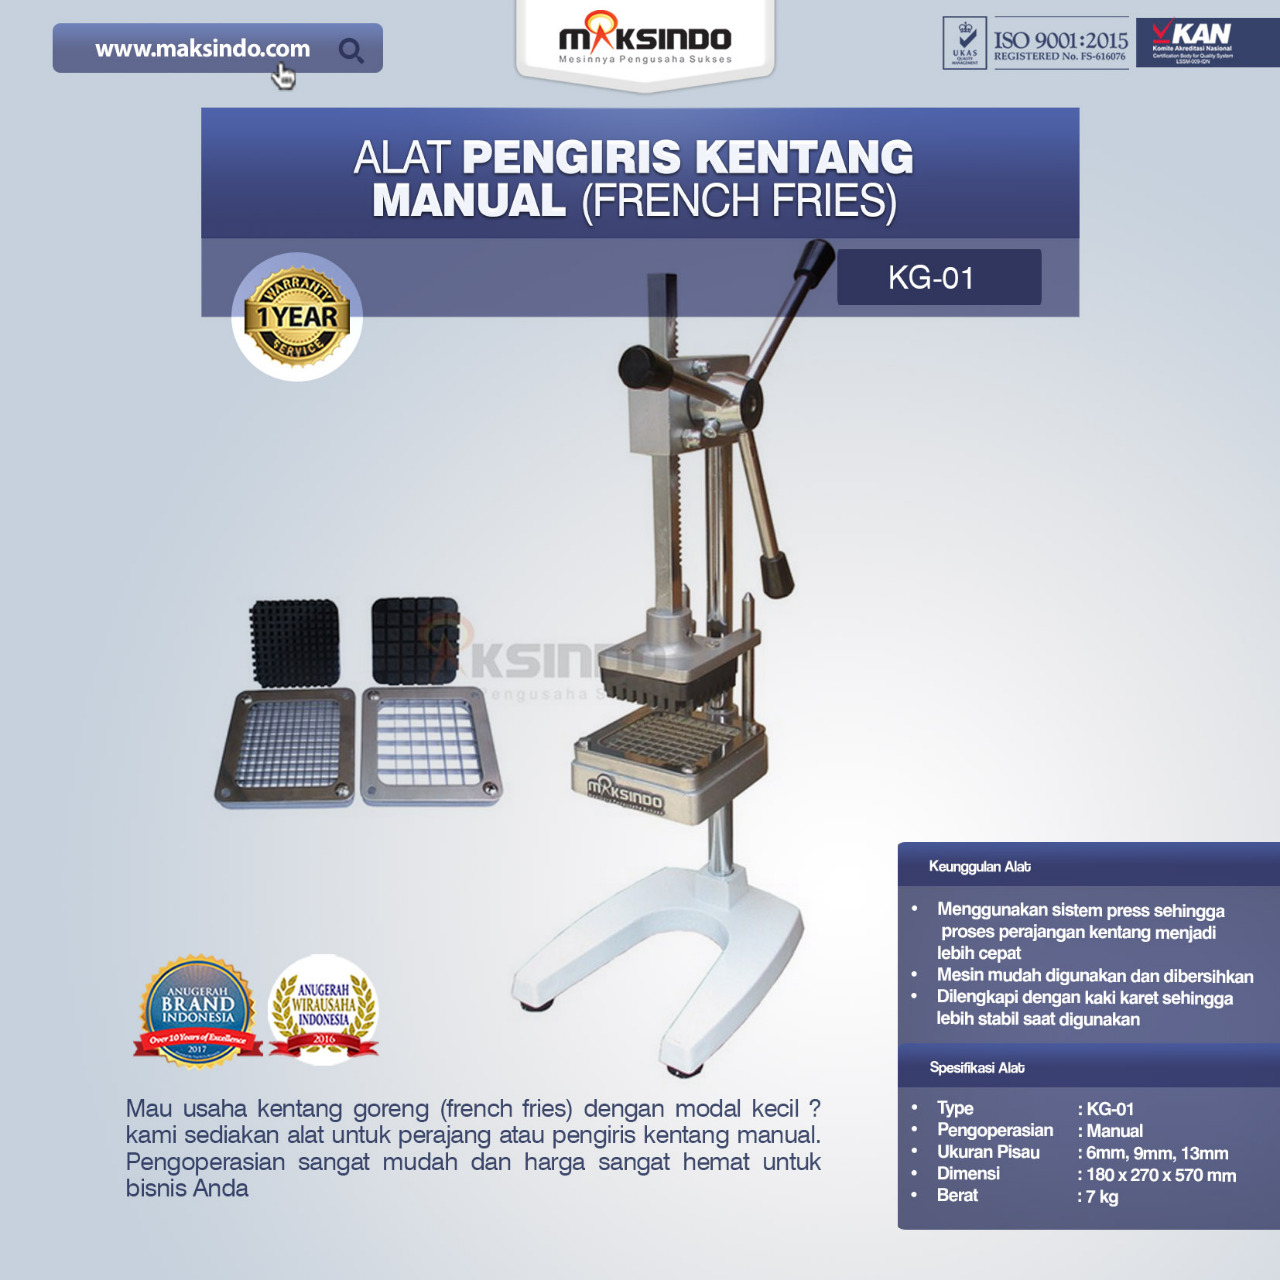 Jual Alat Pengiris Kentang Manual (french fries) di Banjarmasin